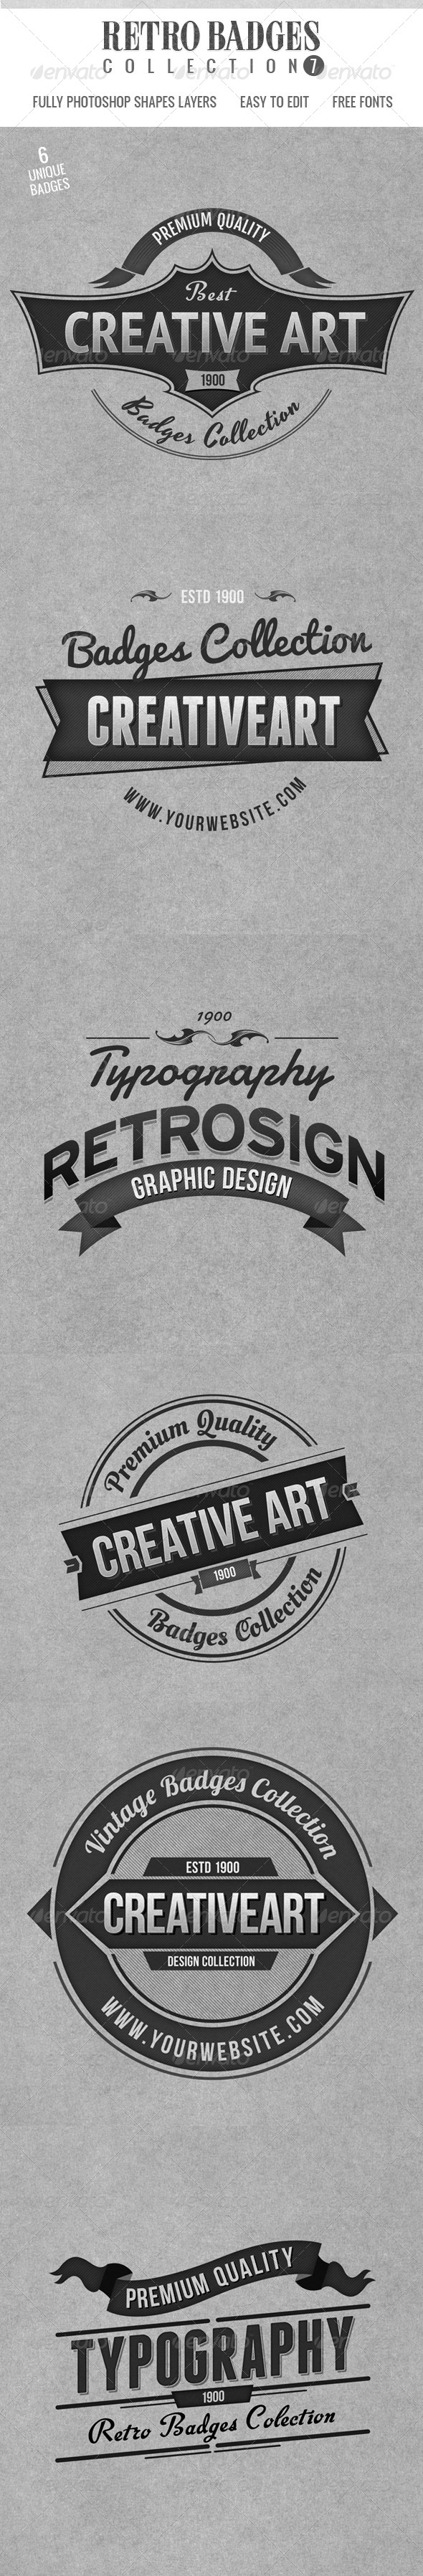 GraphicRiver Retro Badges Col 7 4758673